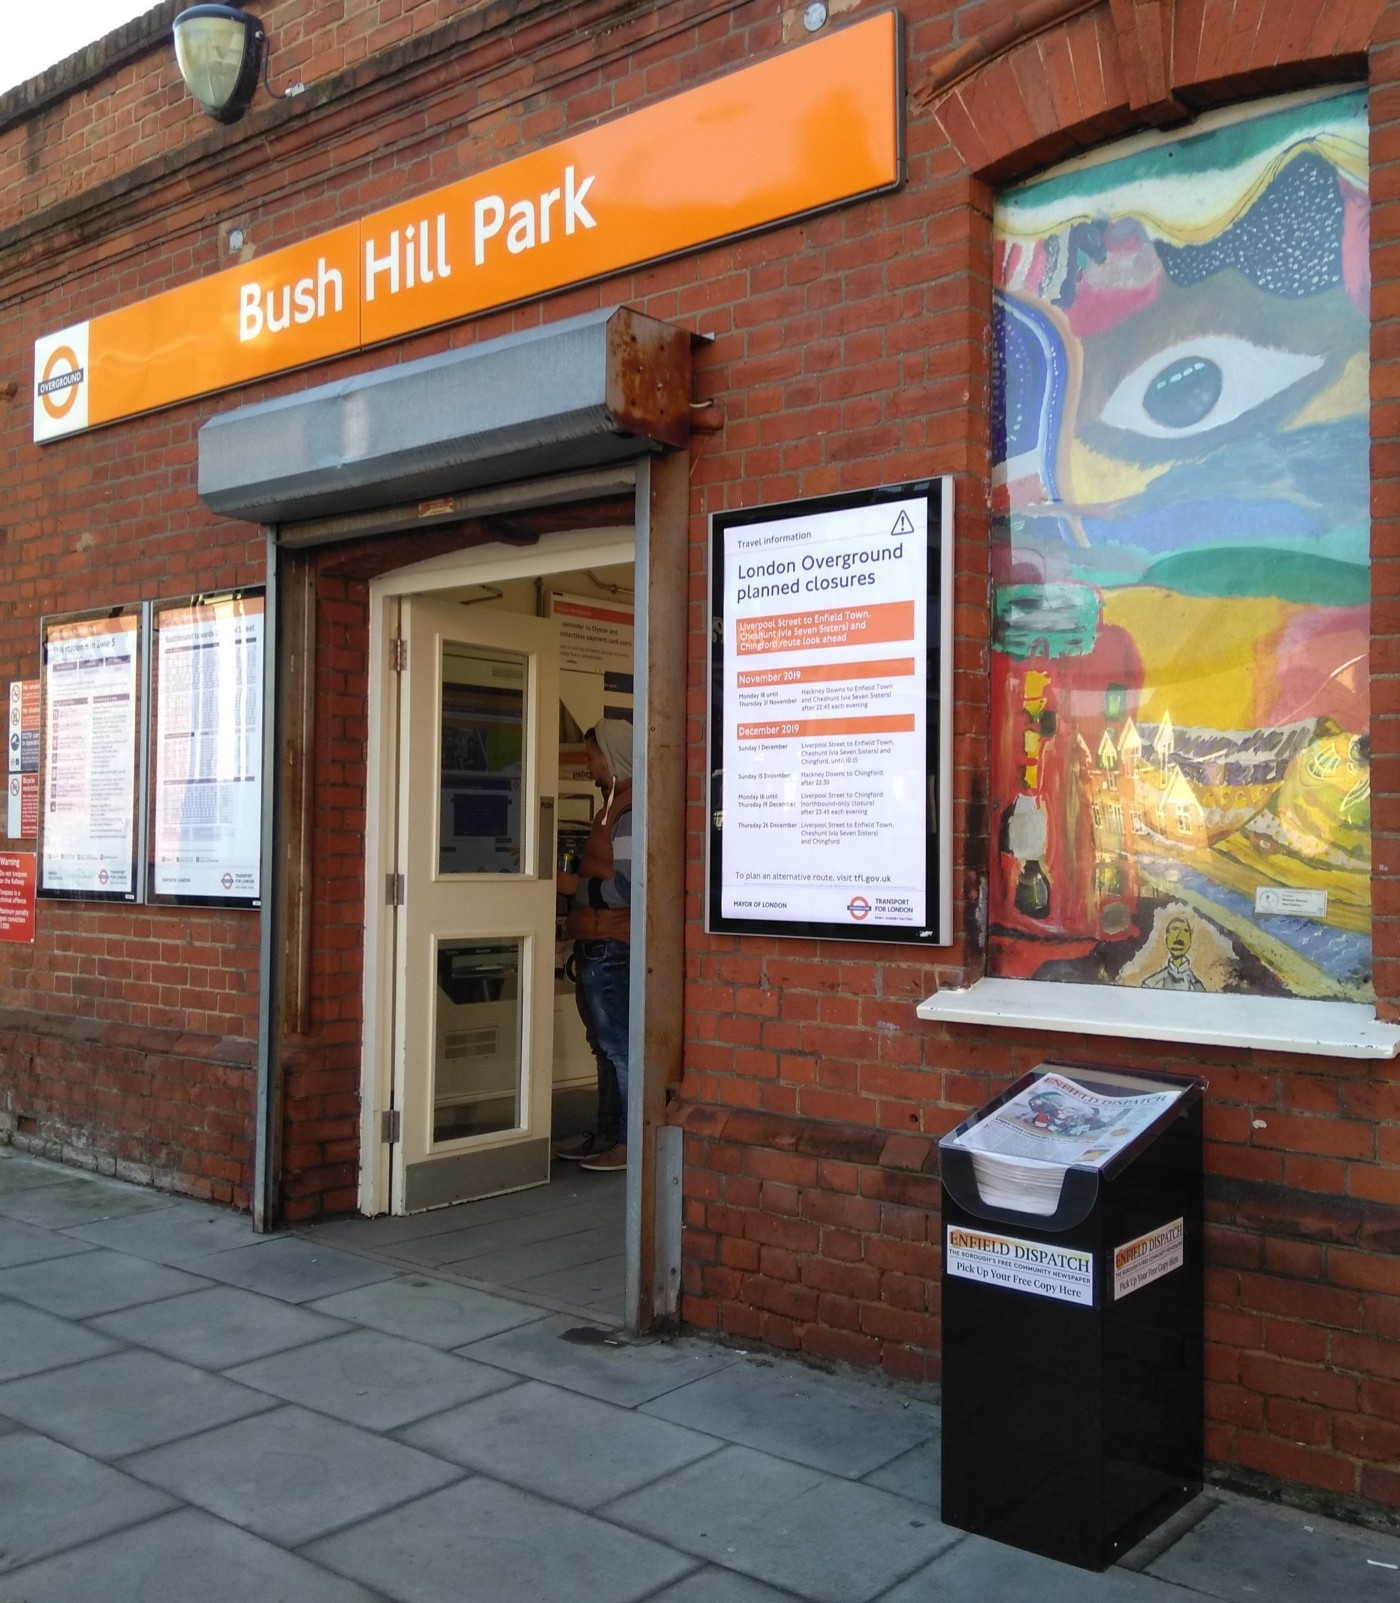 Picture of Enfield Dispatch newsstand outside Bush Hill Park London Overground station